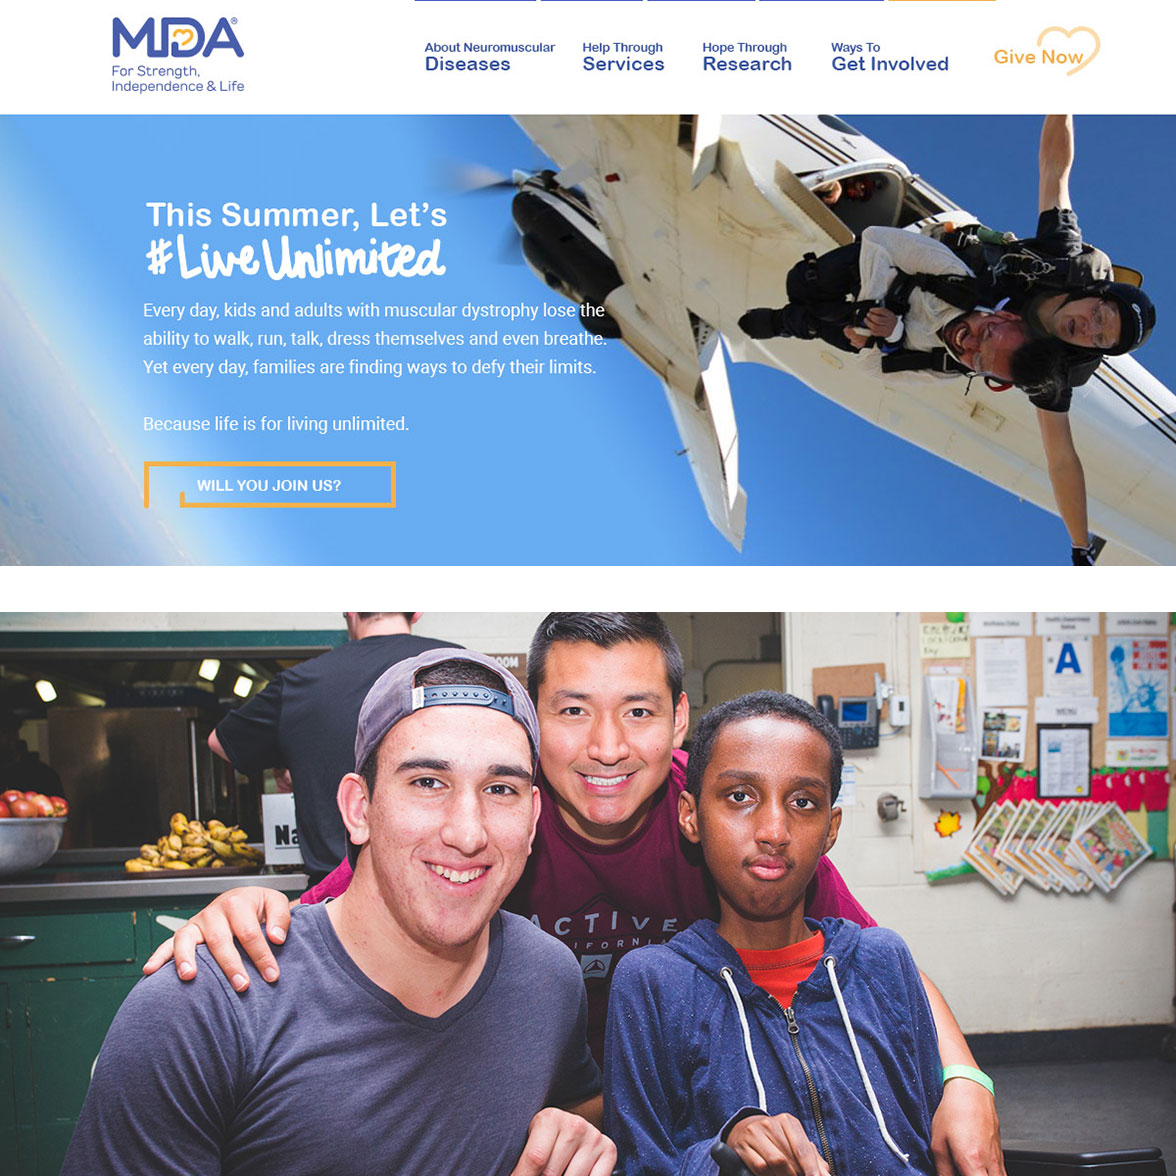 A screenshot of the MDA website and a group photo of three boys smiling